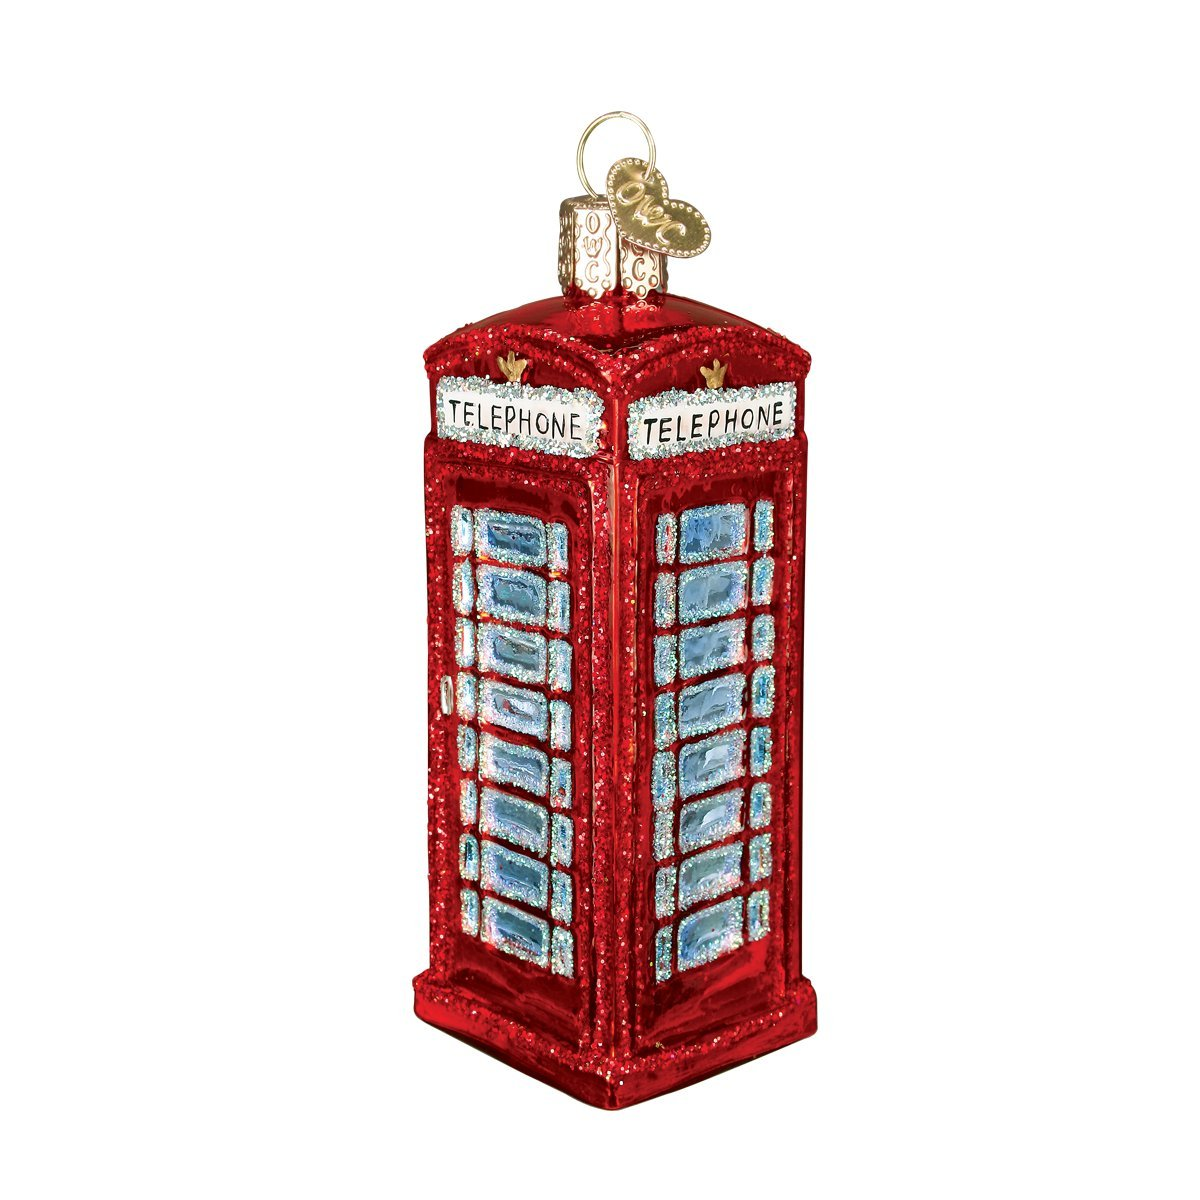 Old World Christmas Ornaments: English Phonebooth Glass Blown Ornaments for Christmas Tree